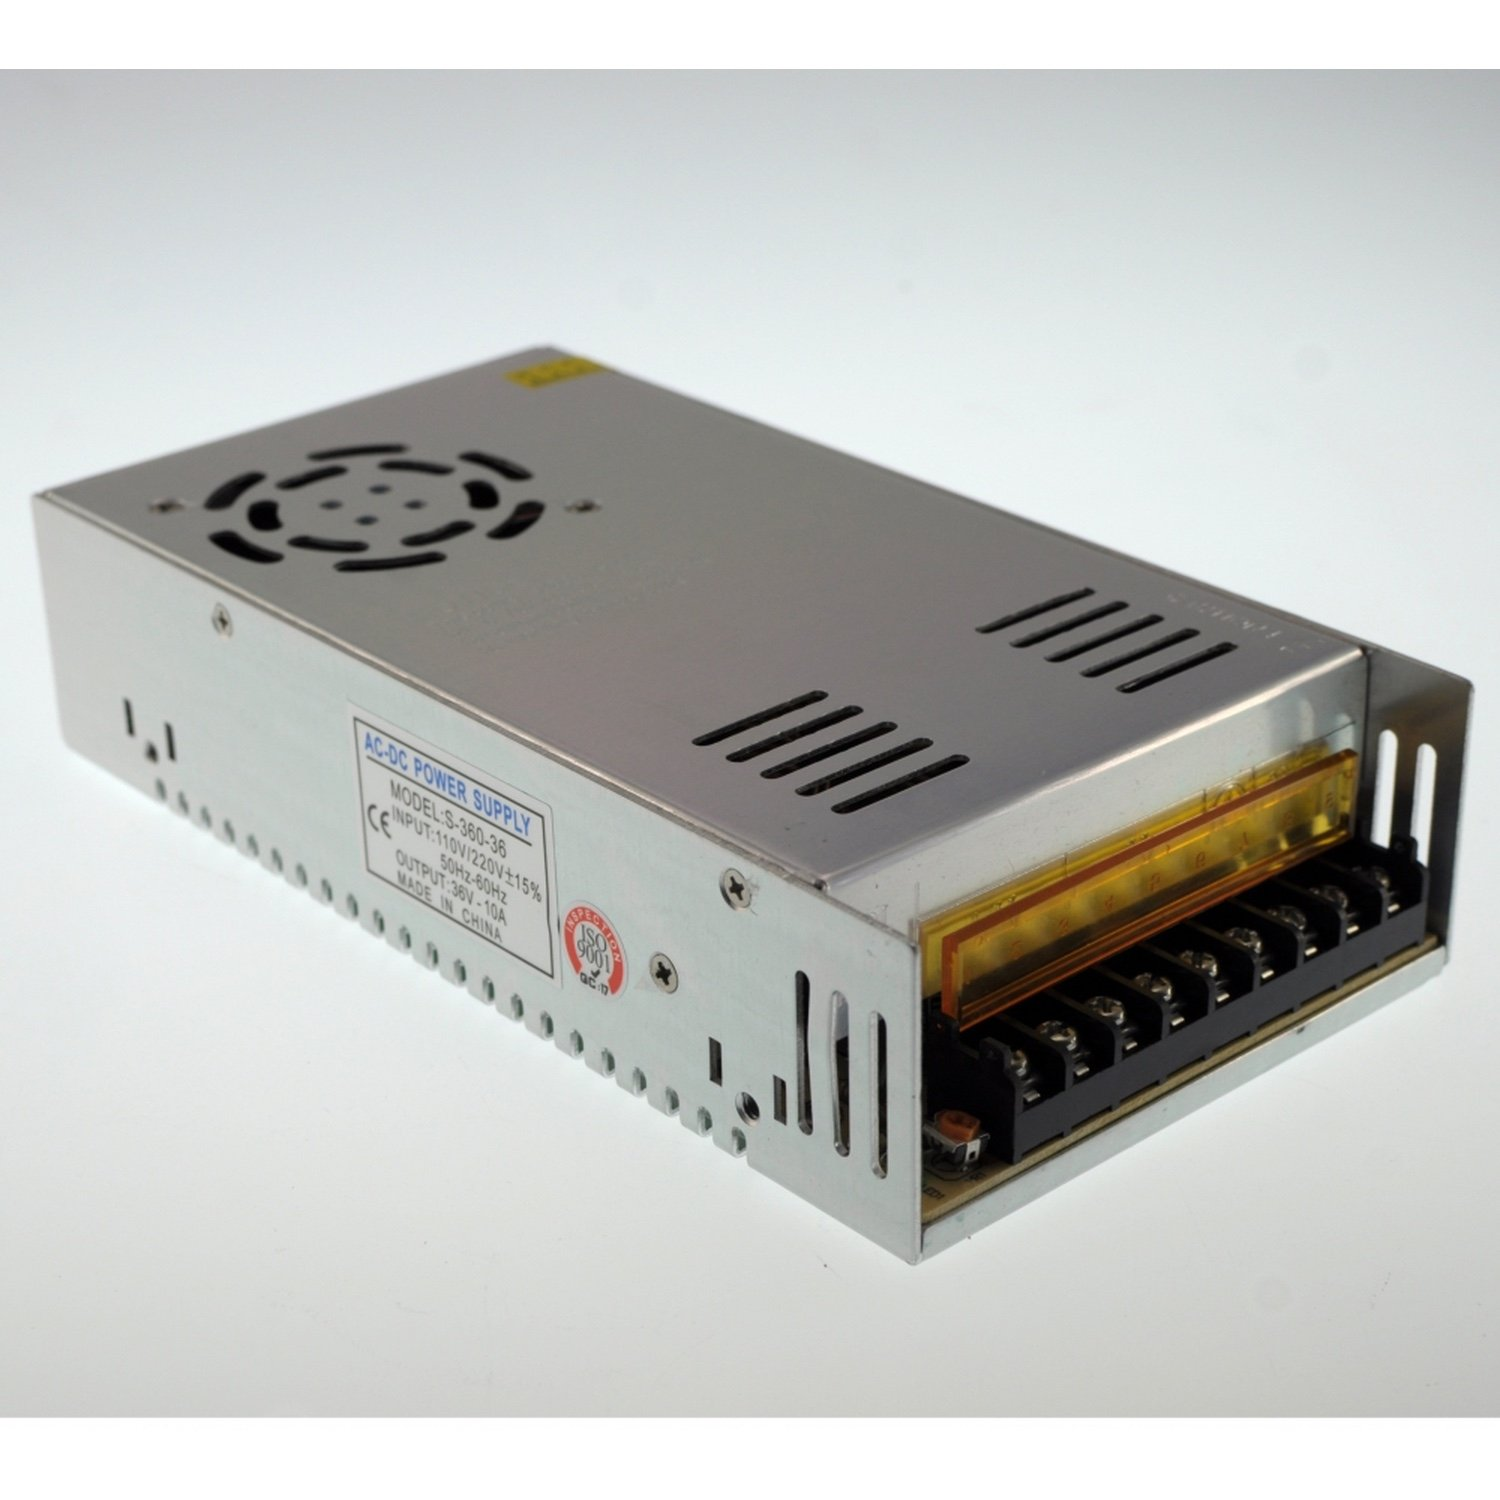 36v 10A Dc Universal Regulated Switching Power Supply 360W for CCTV, Radius, Computer Project, Led switching power supply 36v 10a 360w engraving machine supporting power